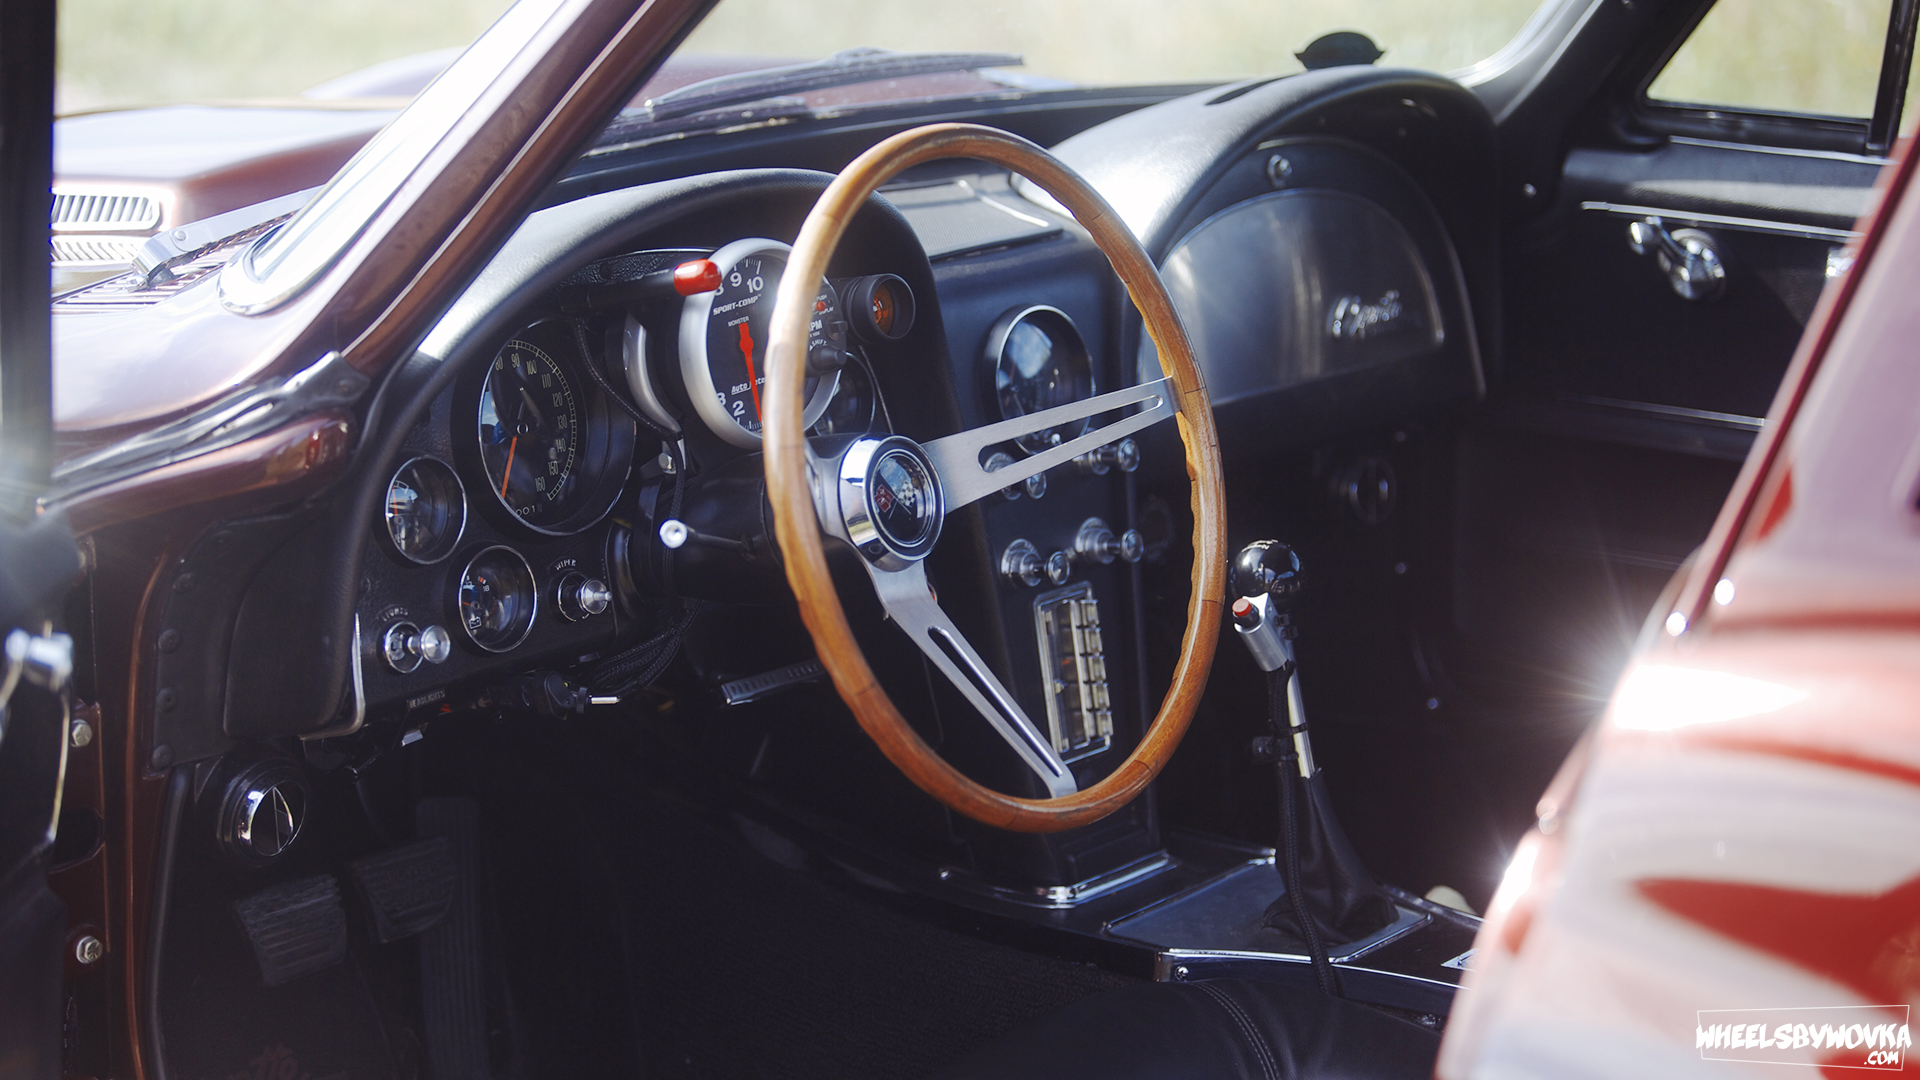 Notice the Red Button on the gearshift  for the Nitrous. Photo: wheelsbywovka